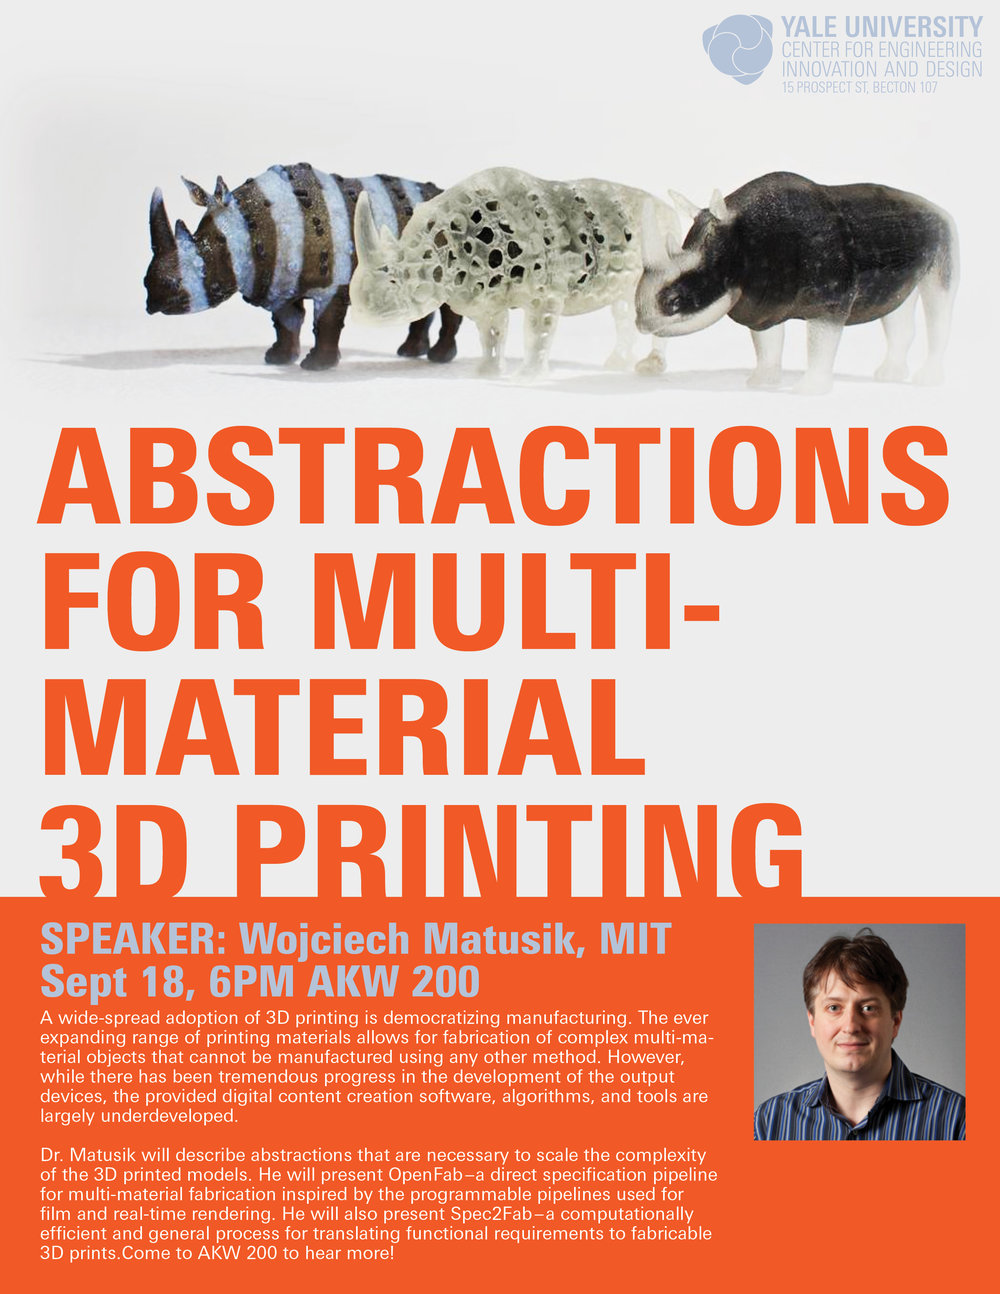 Abstractions for Multi-material 3D Printing